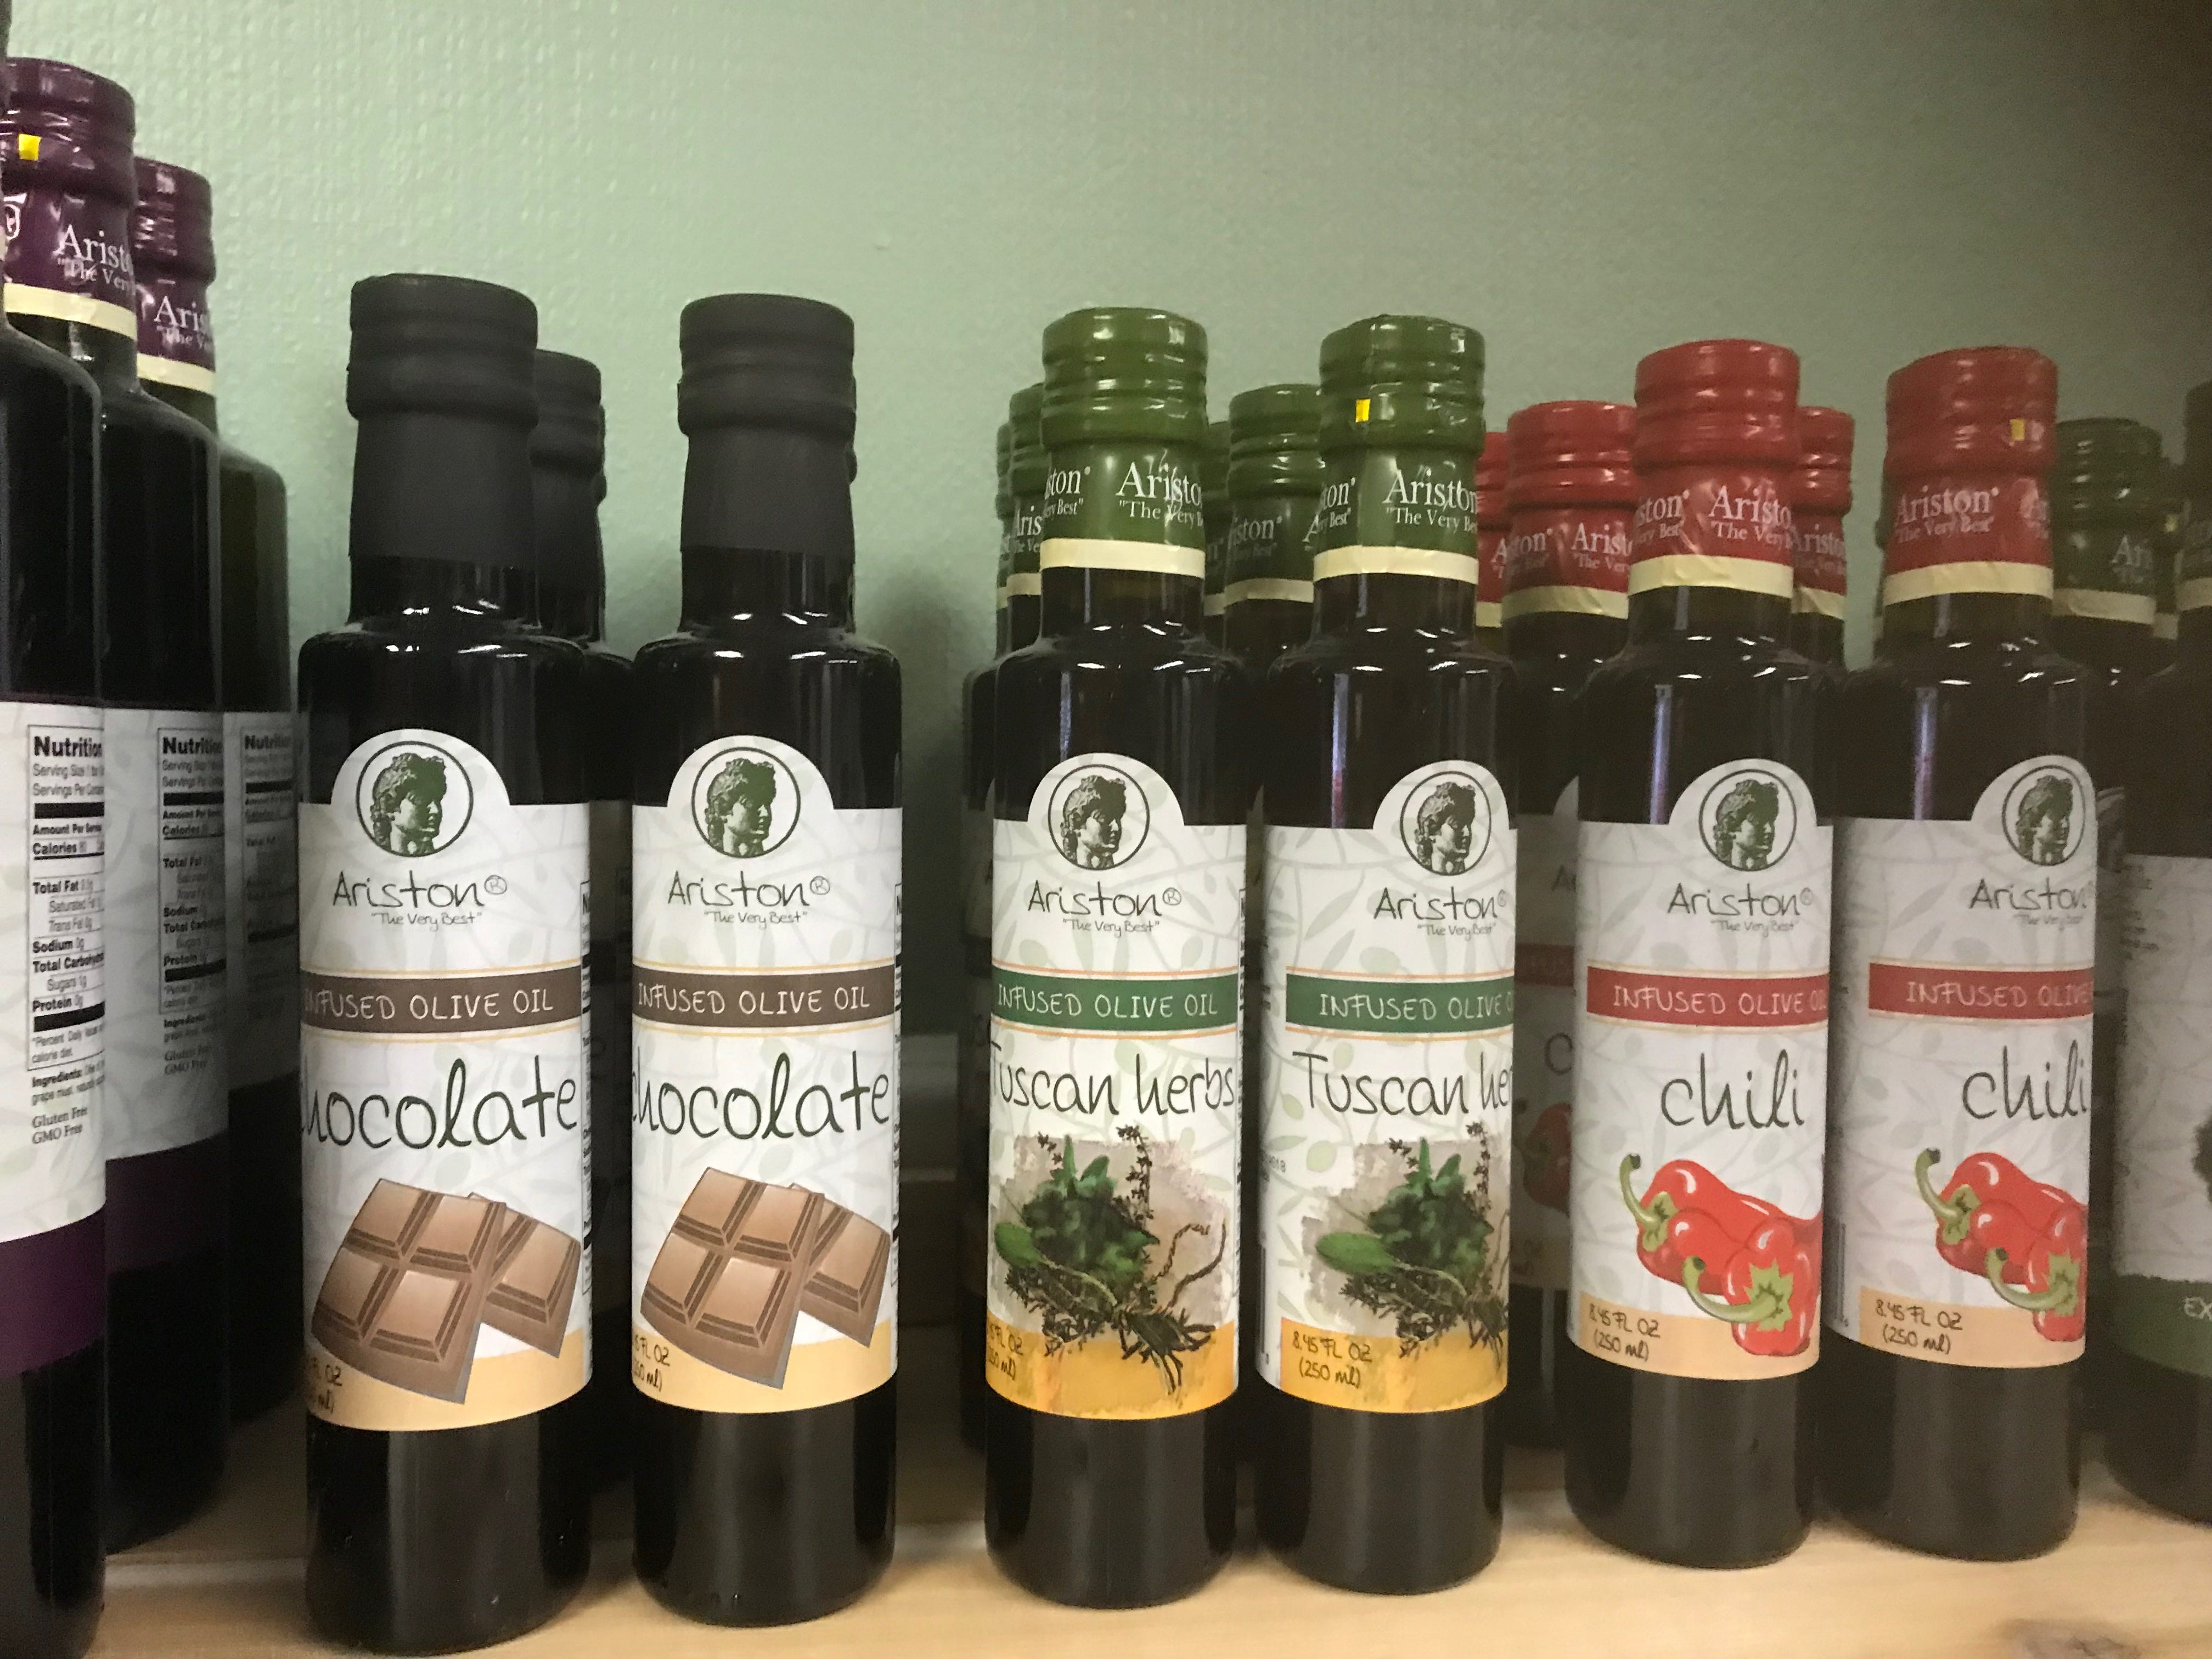 Bottles of gourmet olive oil sit on a shelf in Whiteraven's Nest Farm to Table store on Chincoteague Road in Wallops Island, Virginia on Friday, March 8, 2019.